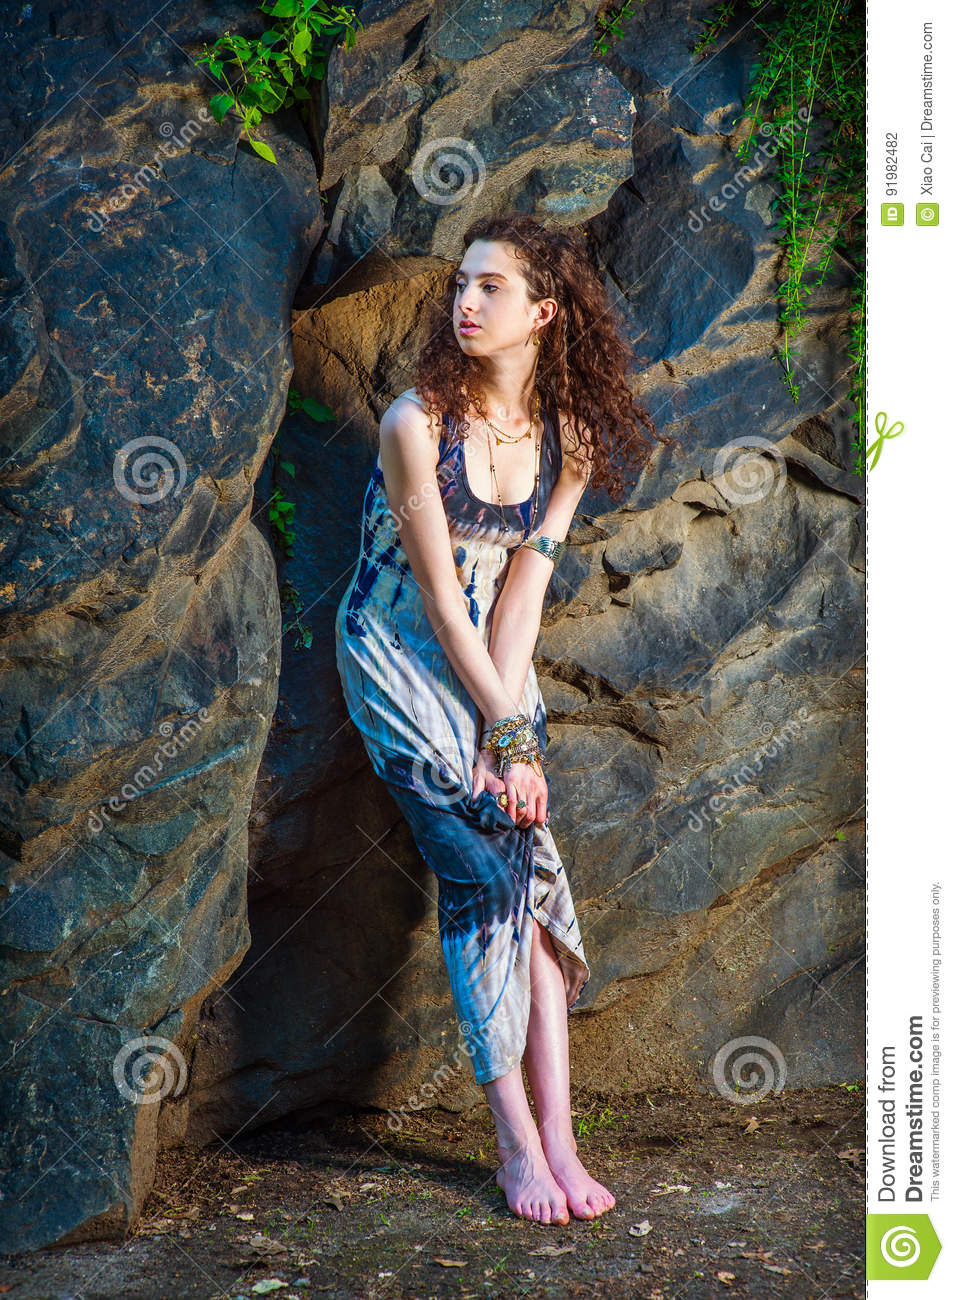 ba47455427a American Teenage Girl Summer Fashion in New York, with curly long hair,  bare feet, wearing patterned long dress, chunky chain bracelet, arm cuff  bracelet, ...